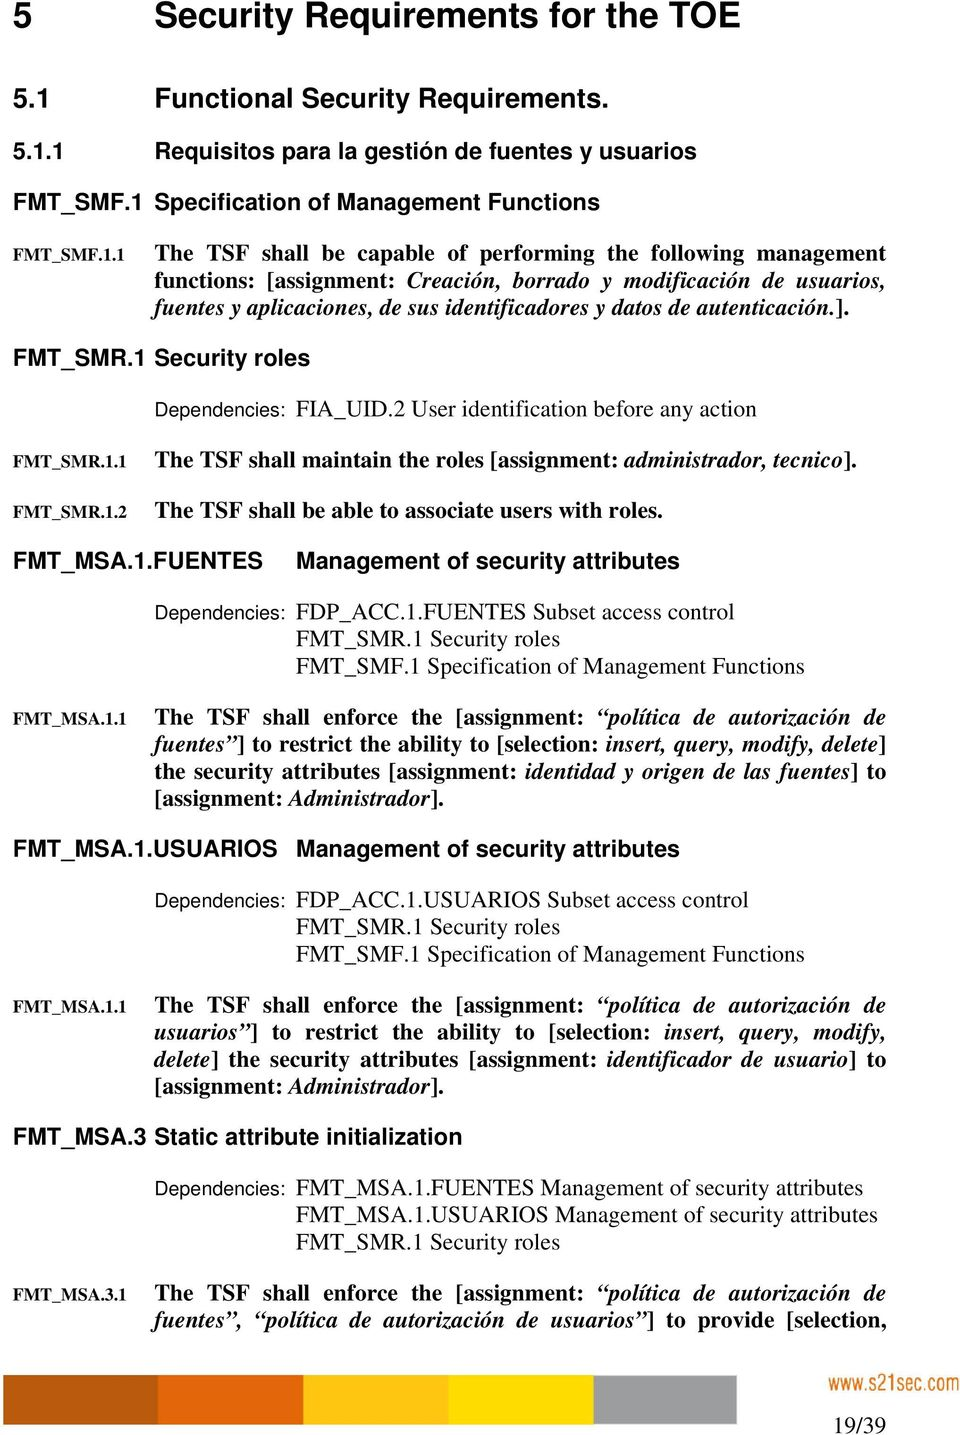 1 Requisitos para la gestión de fuentes y usuarios FMT_SMF.1 Specification of Management Functions FMT_SMF.1.1 The TSF shall be capable of performing the following management functions: [assignment: